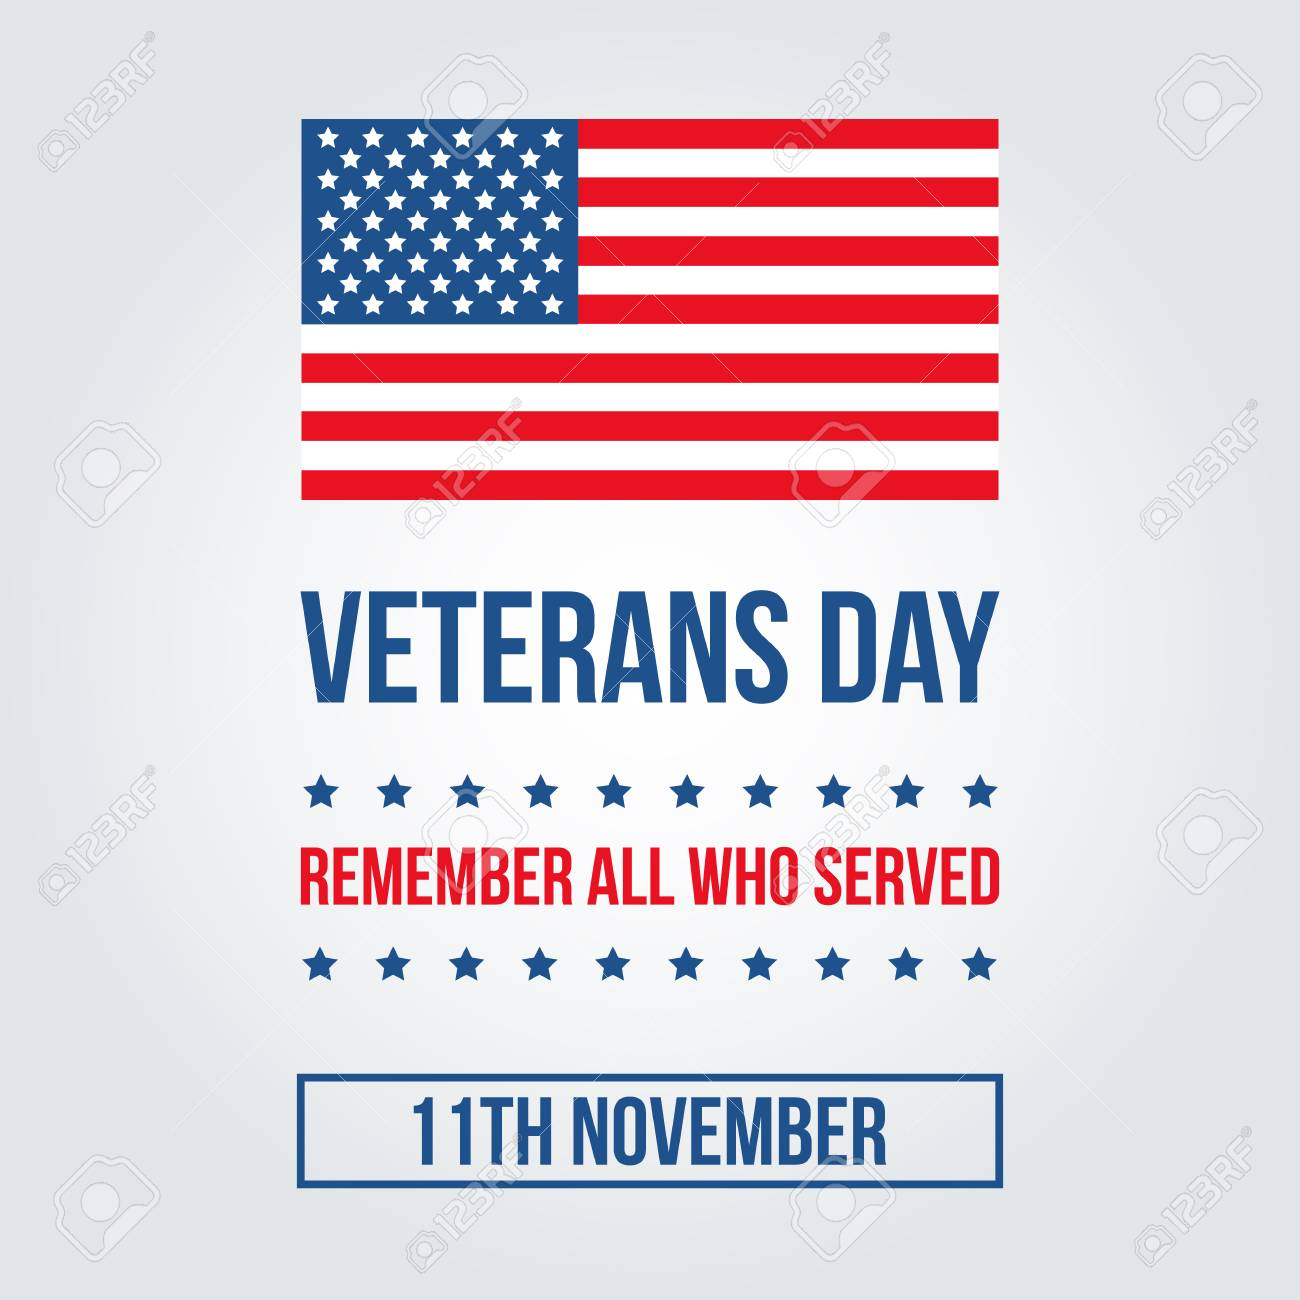 veterans day card with american flag template background royalty